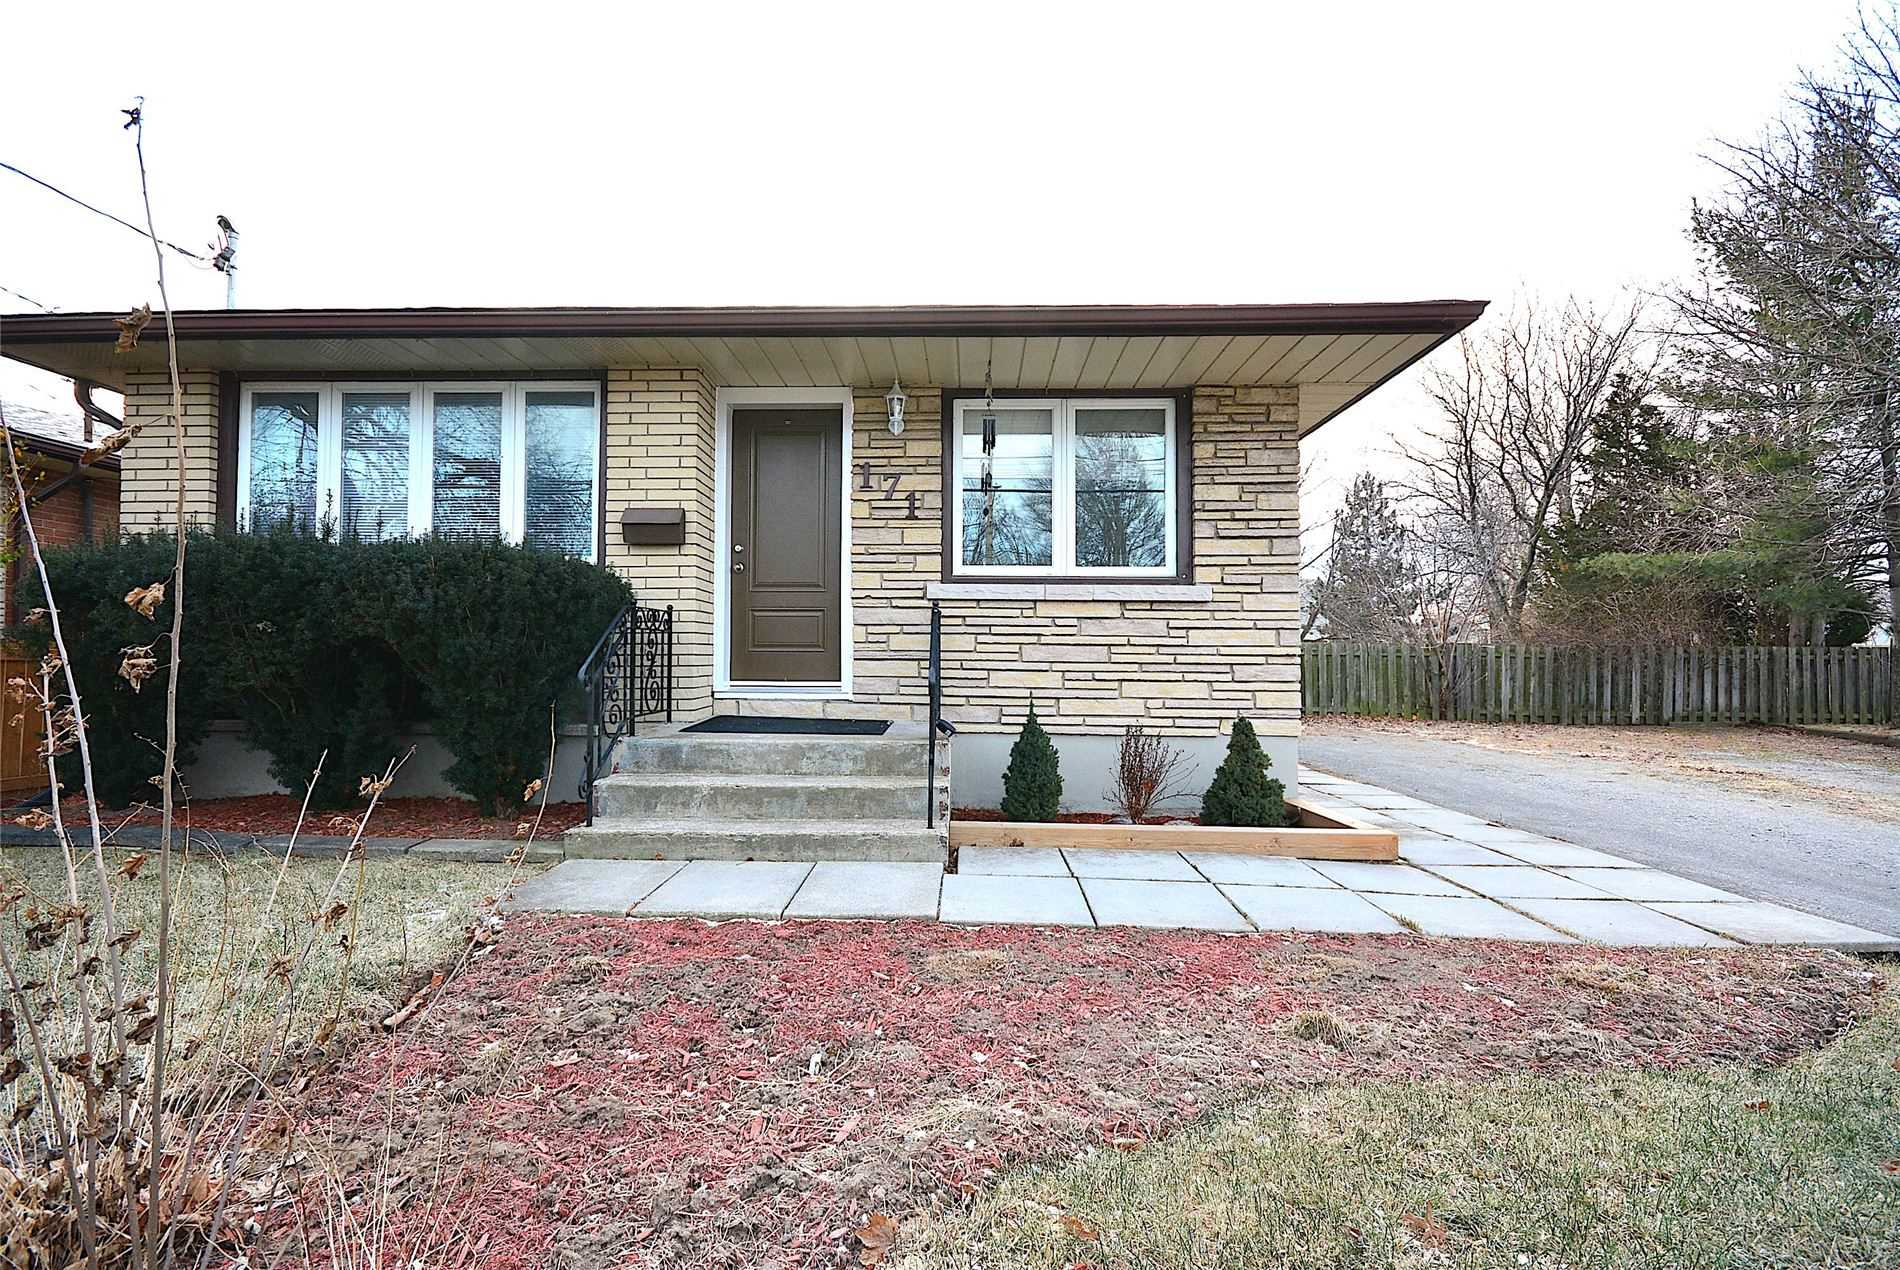 Detached house For Lease In St. Catharines - 171 Rykert St, St. Catharines, Ontario, Canada L2S 2B5 , 3 Bedrooms Bedrooms, ,1 BathroomBathrooms,Detached,For Lease,1,Rykert